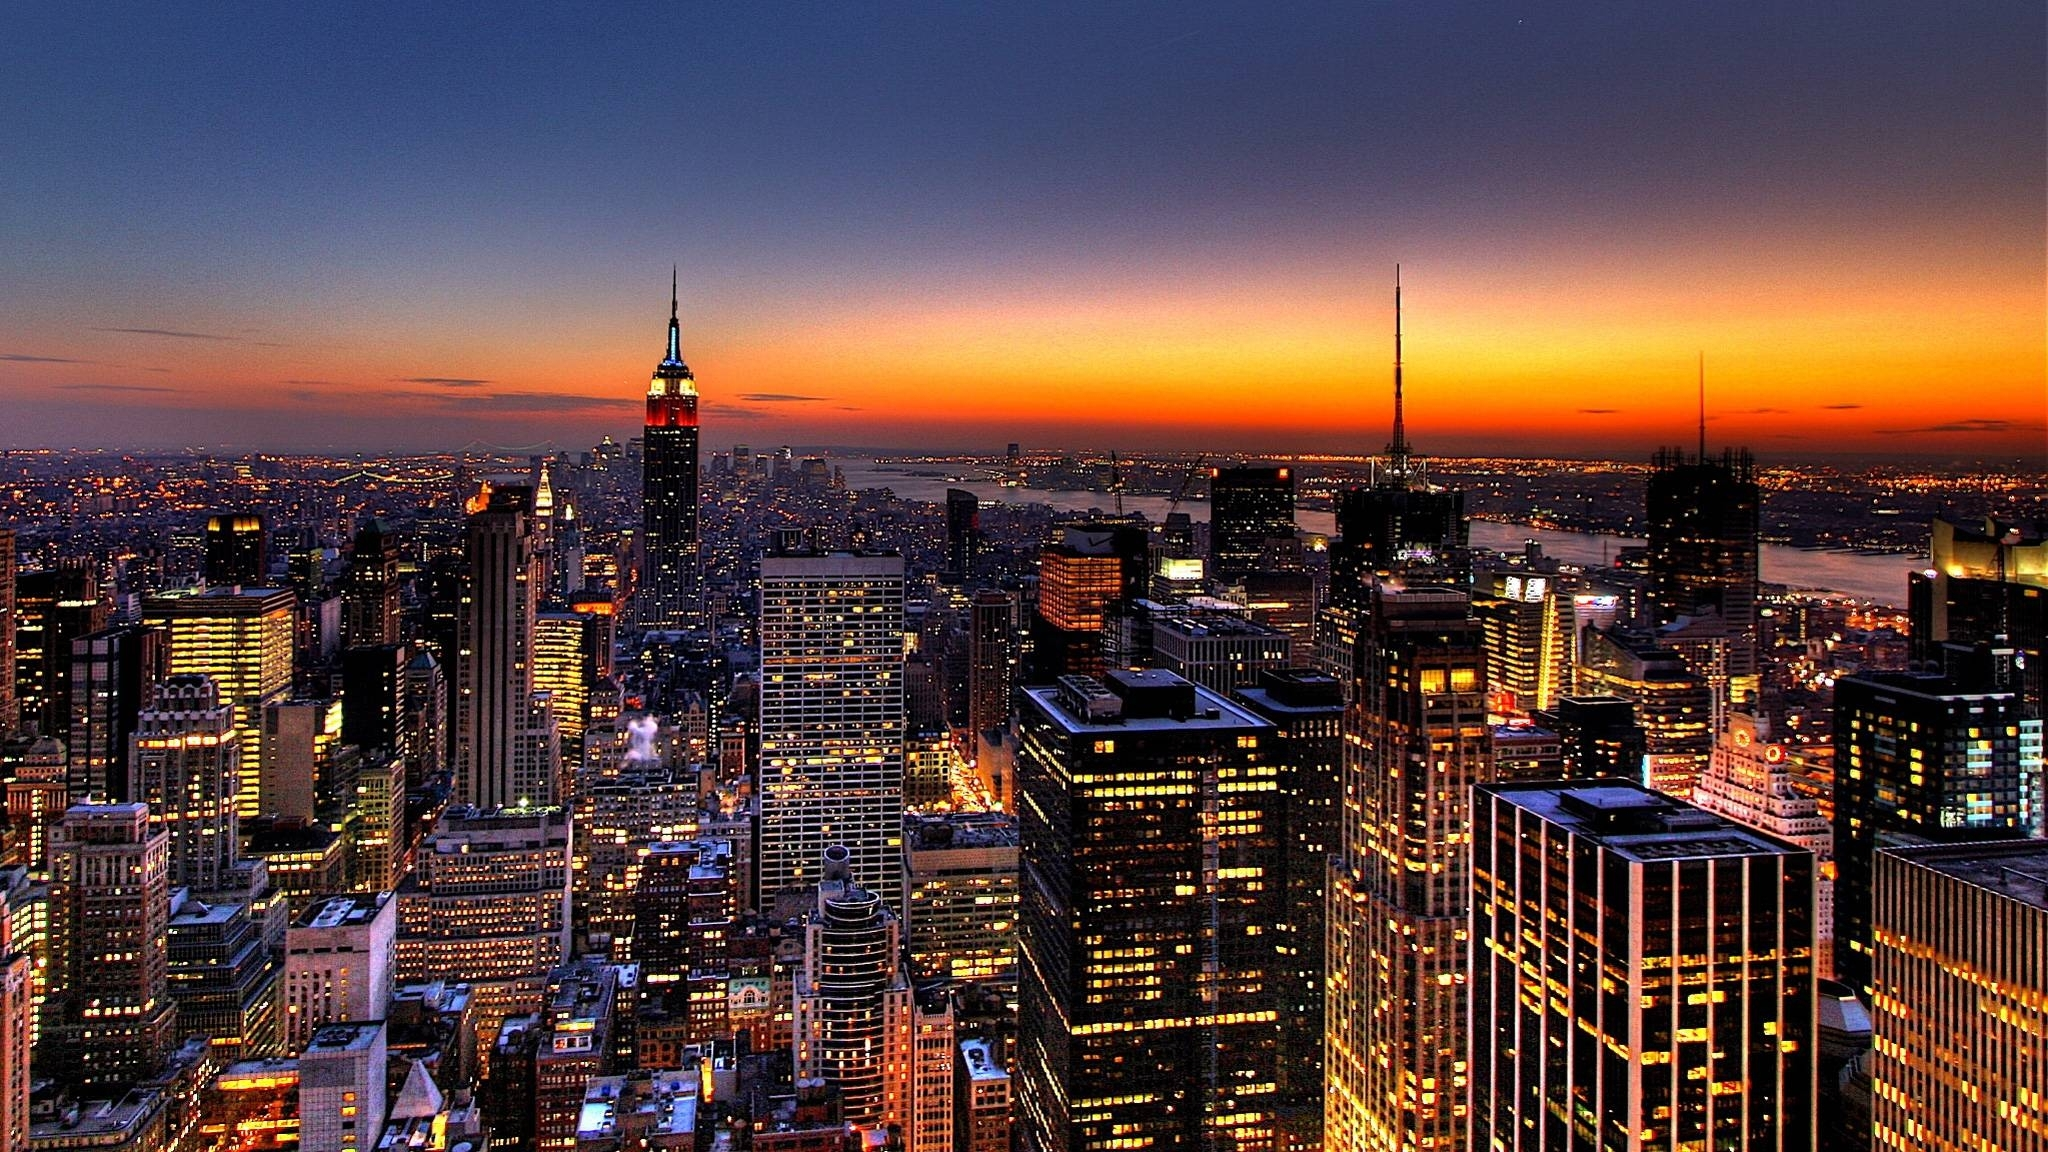 10 Best New York Night Wallpaper FULL HD 1920×1080 For PC Background